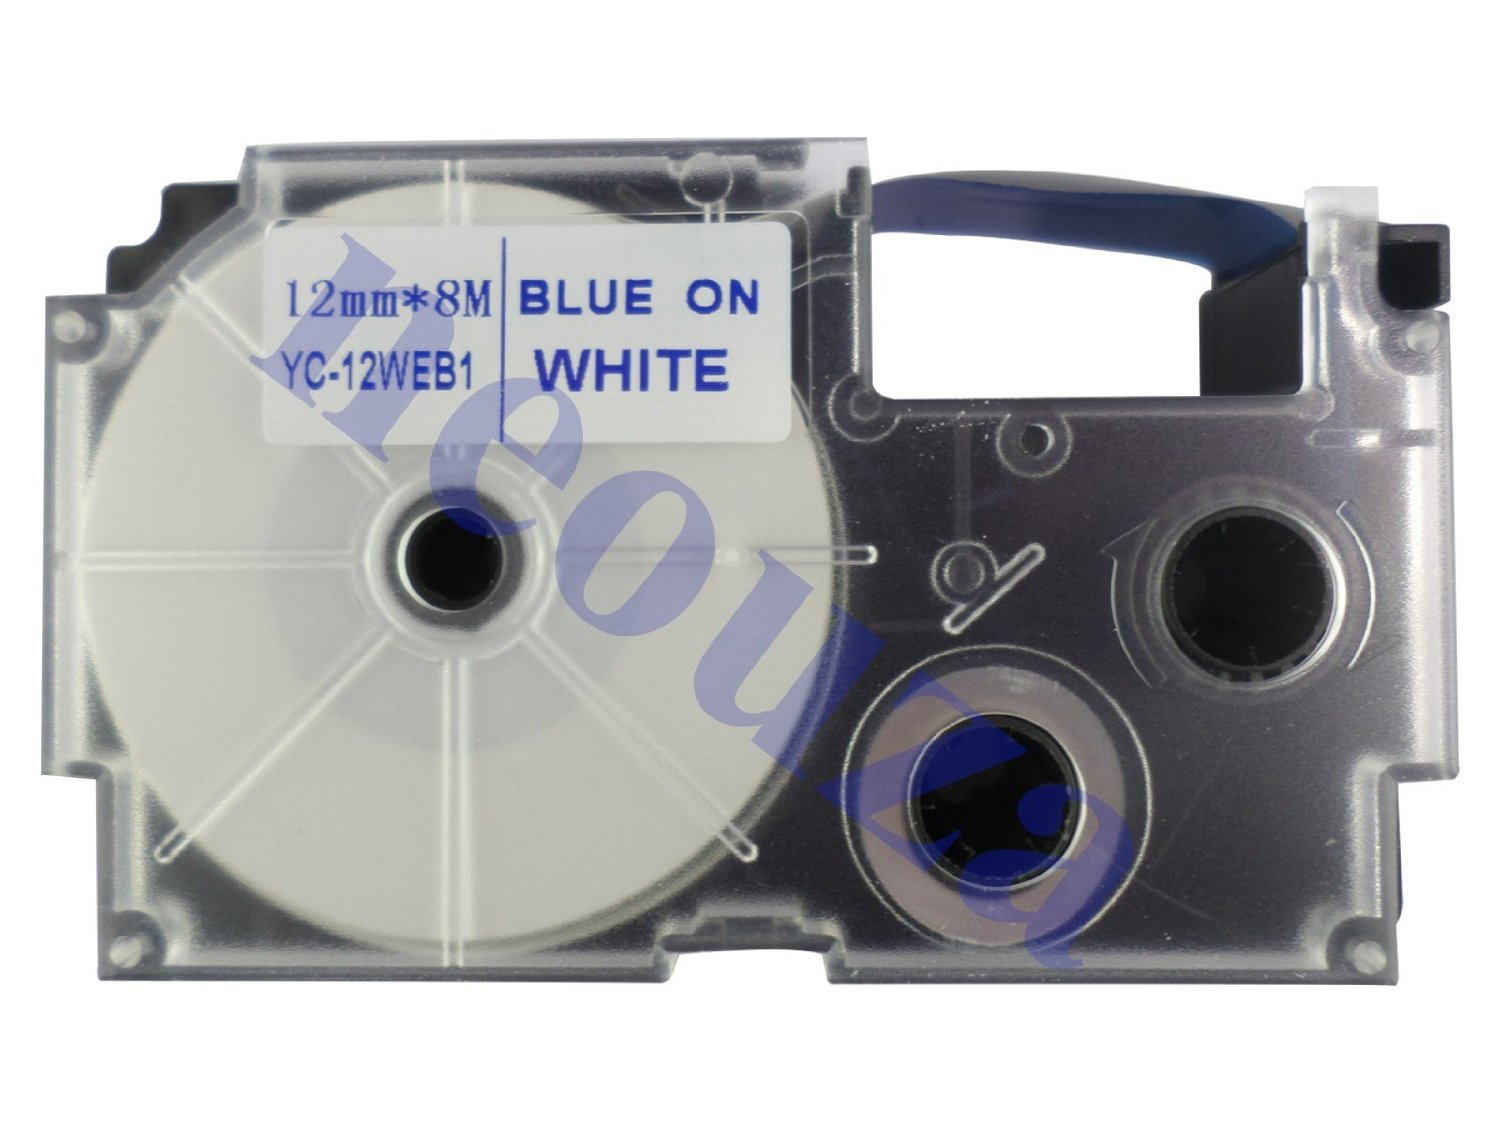 Compatible for Casio EZ-Label Tape 12mm Blue on White XR-12WEB1 8m LABEL IT!